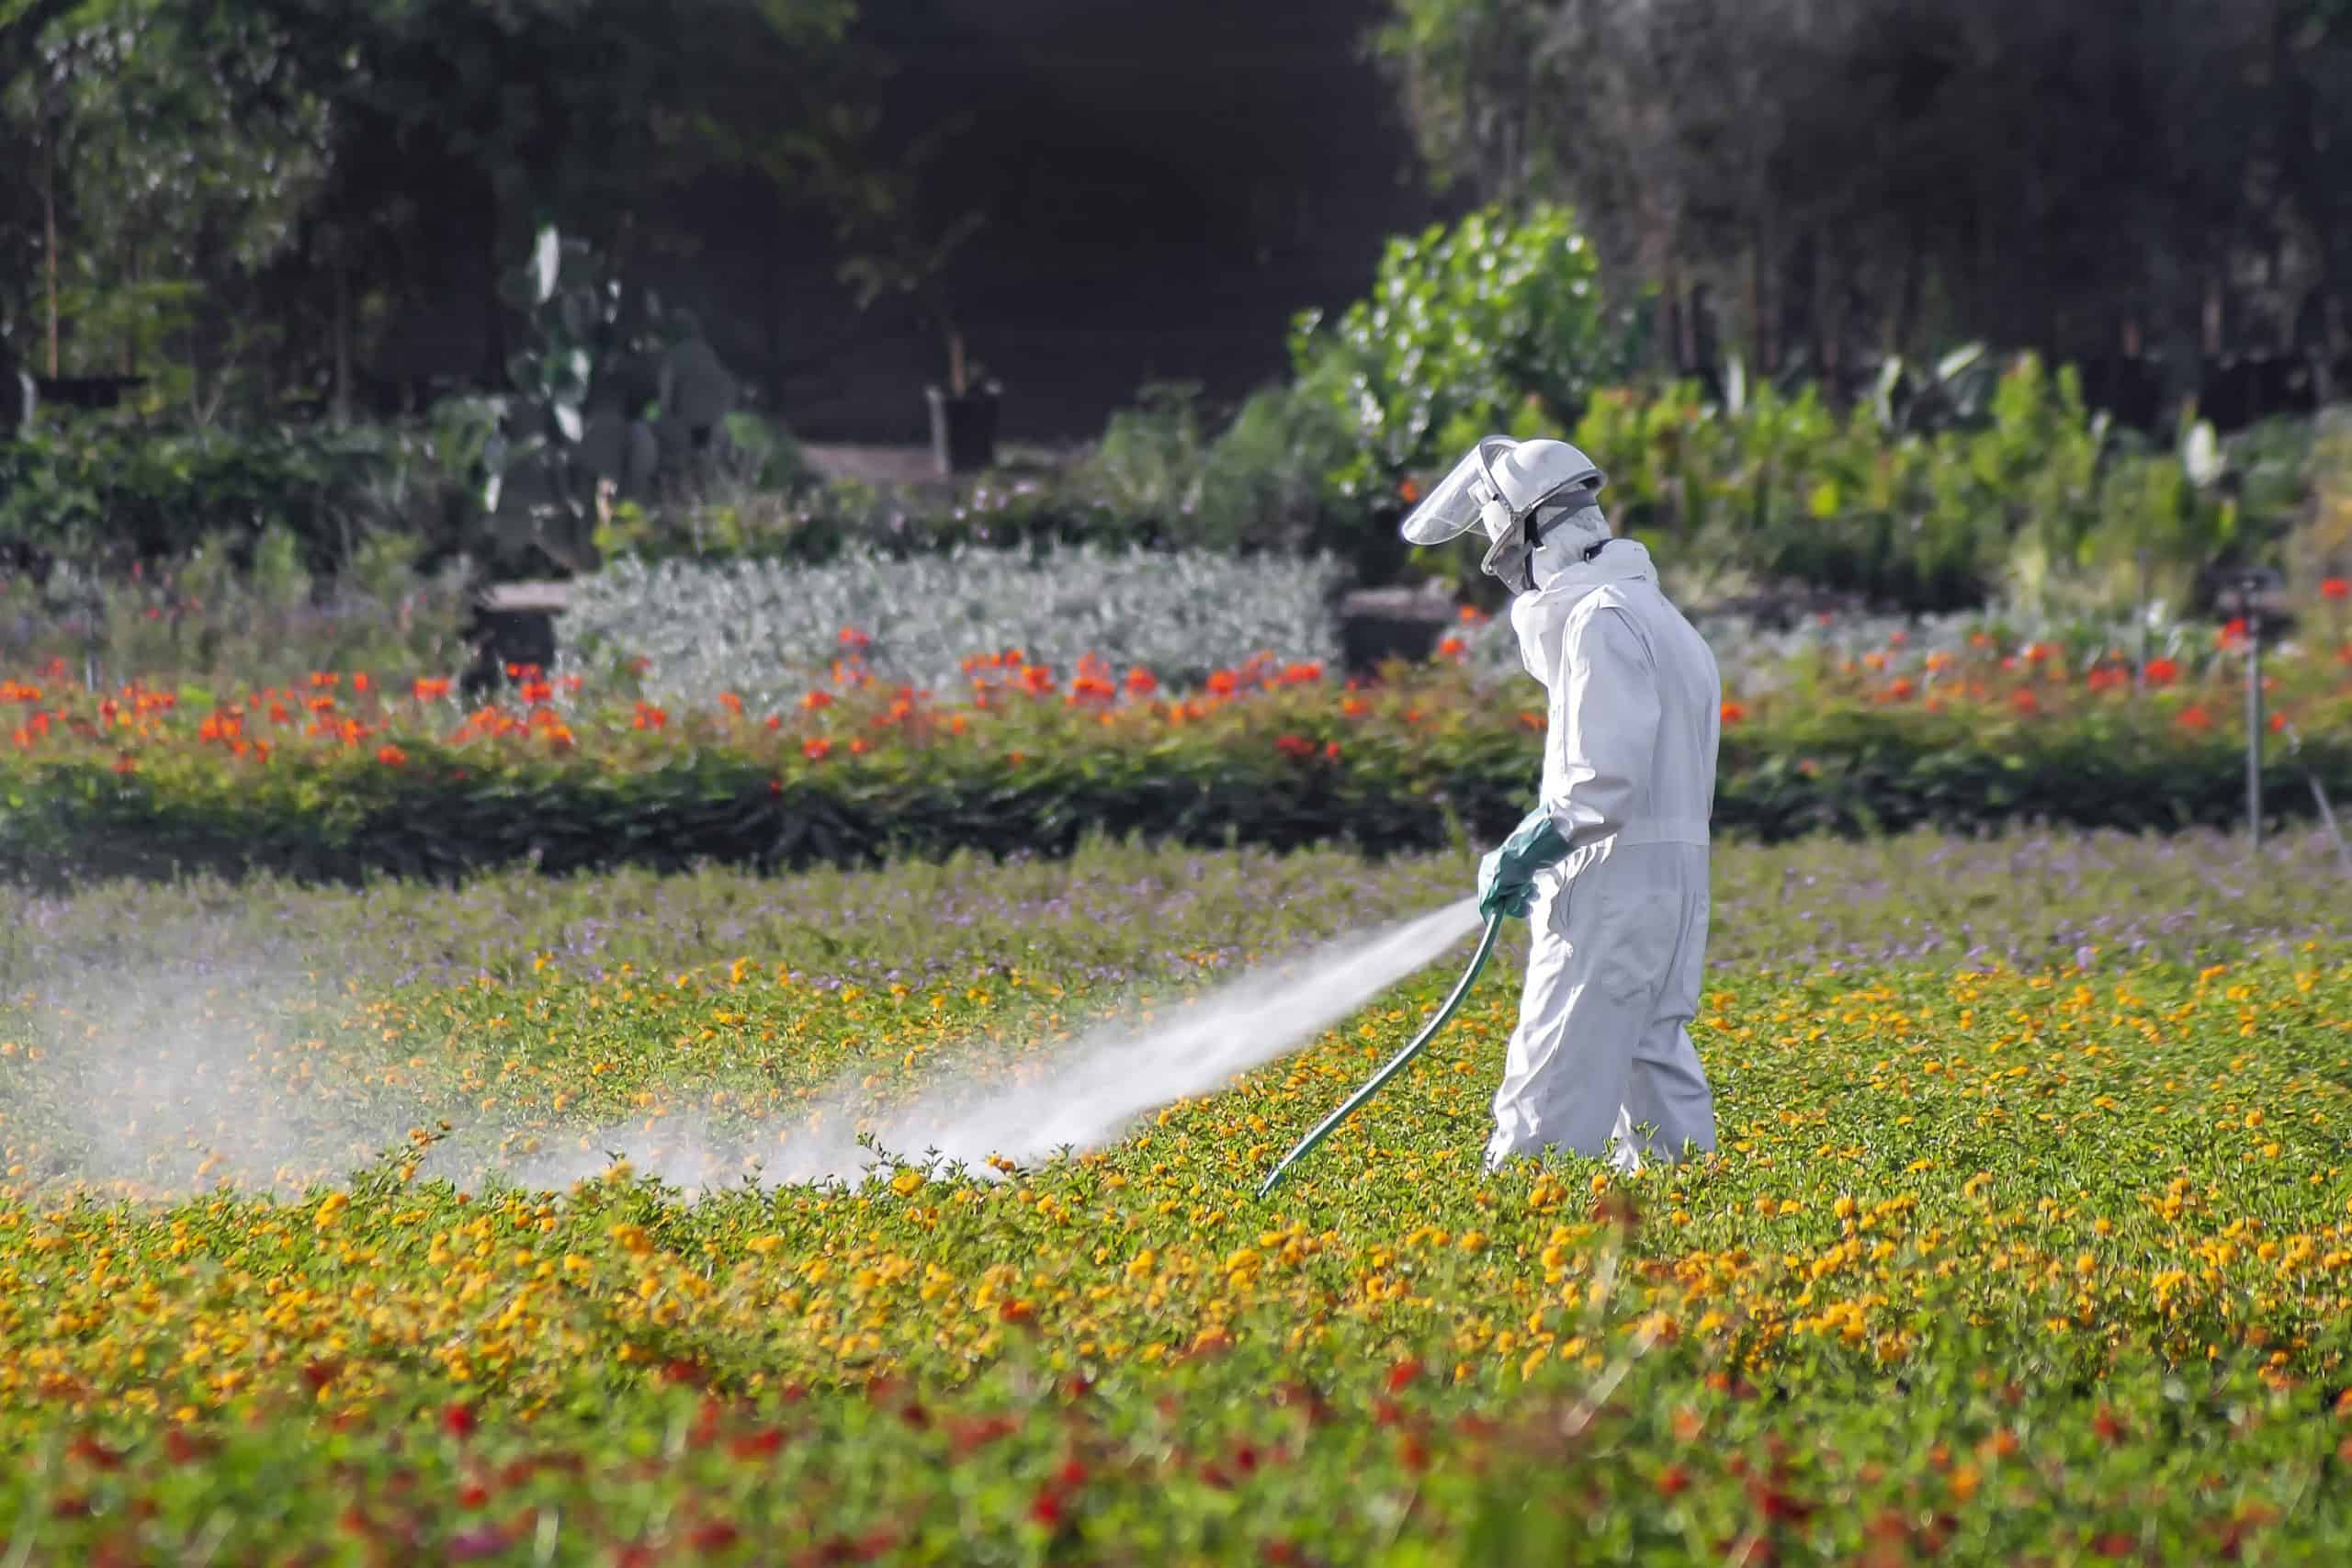 Level 2 Award in the Safe Use of Pesticides Ofqual Qualification Number 601/5977 Includes Course, Proctored exam and Ofqual Certificate